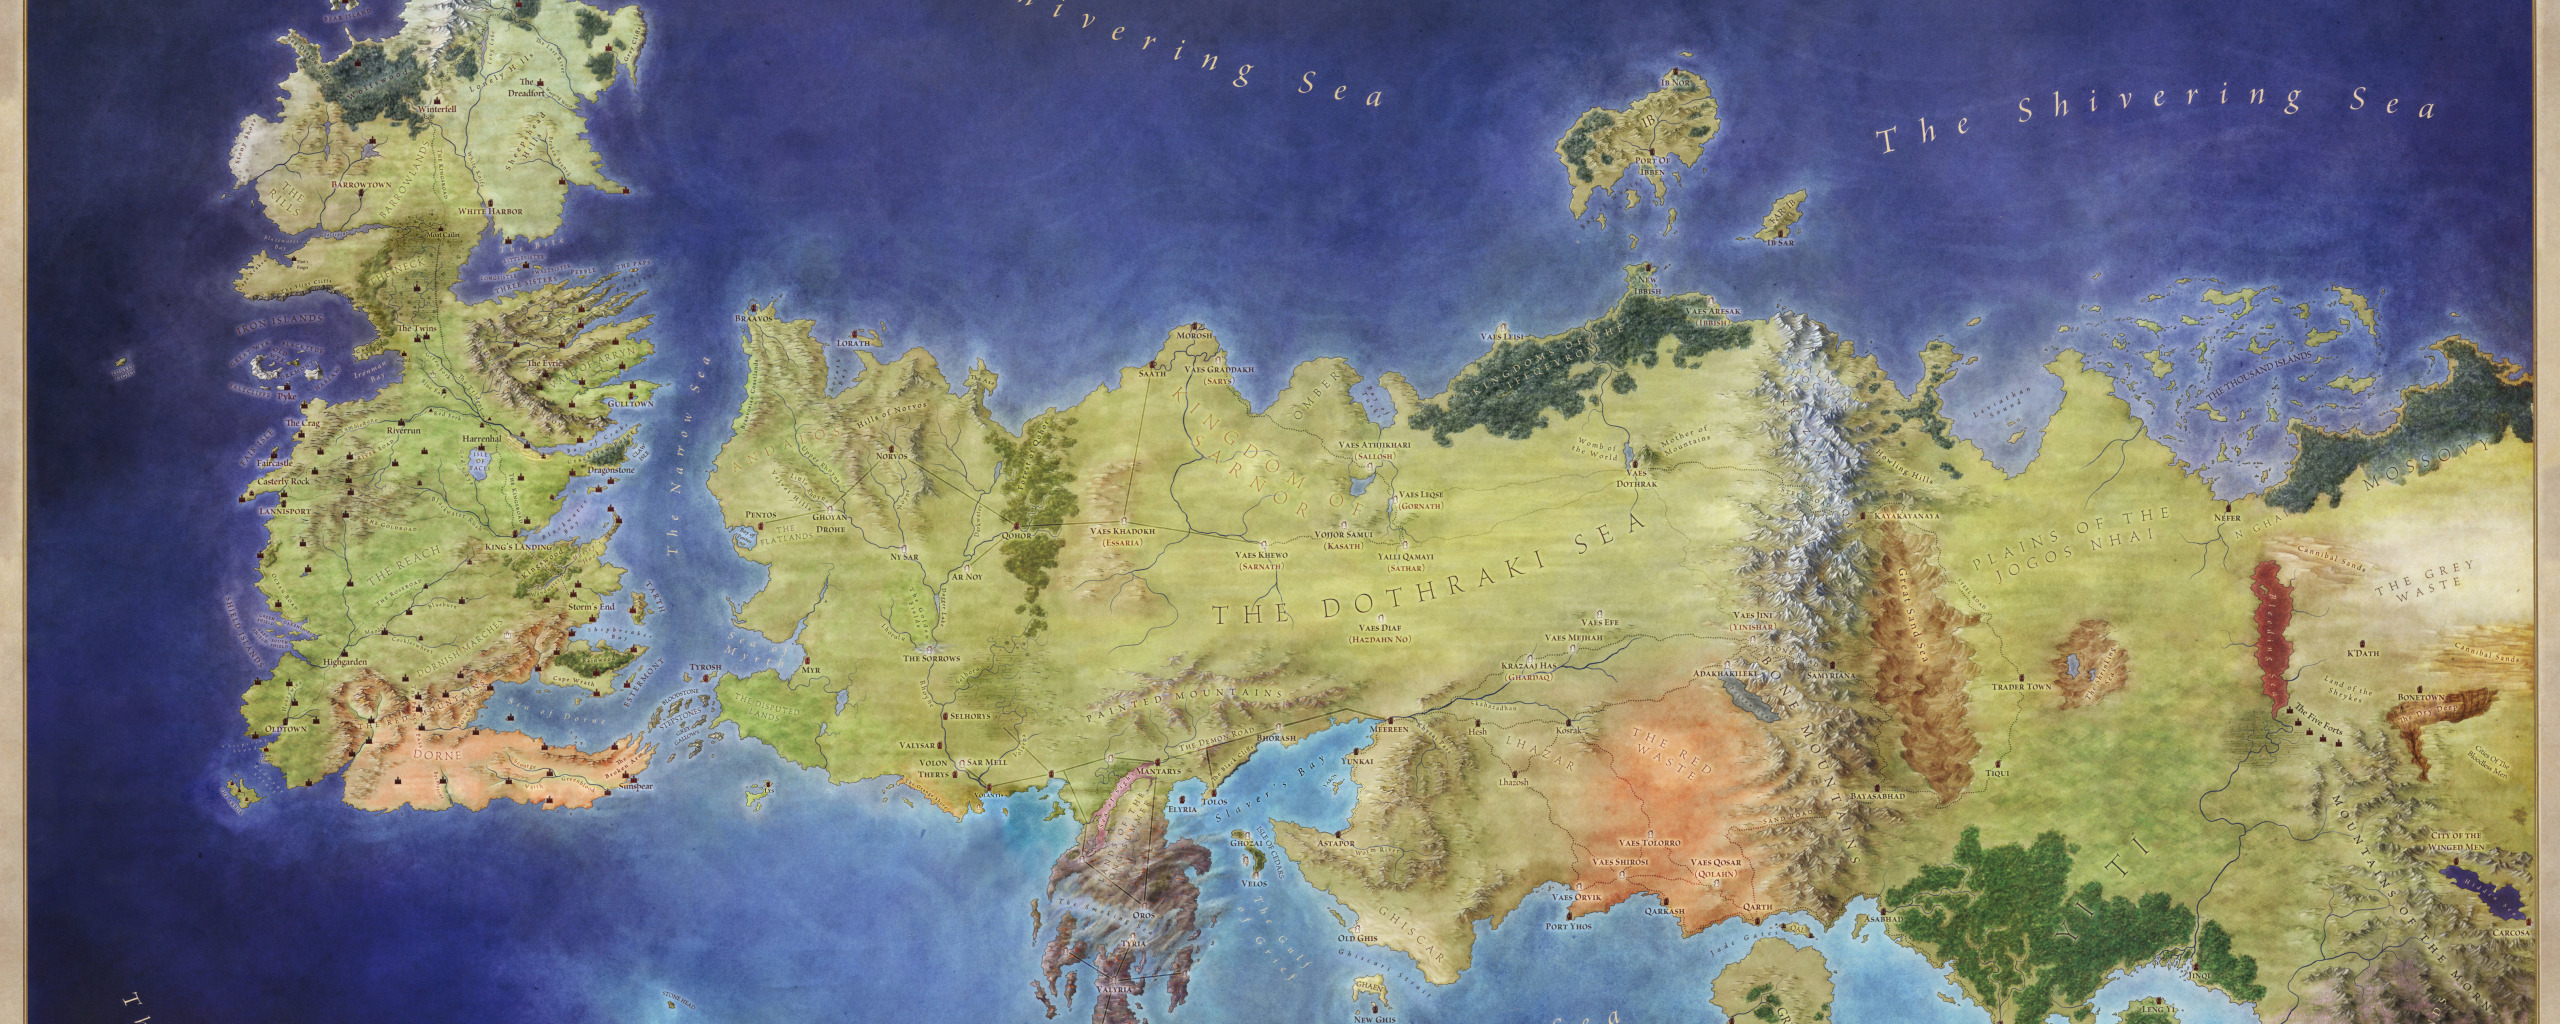 Download wallpaper background, map, A Song of Ice and Fire ... on game of thrones continents, sca known world map, ice and fire world map, game of thrones world map pdf, game of thrones chart, game of thrones maps and families,